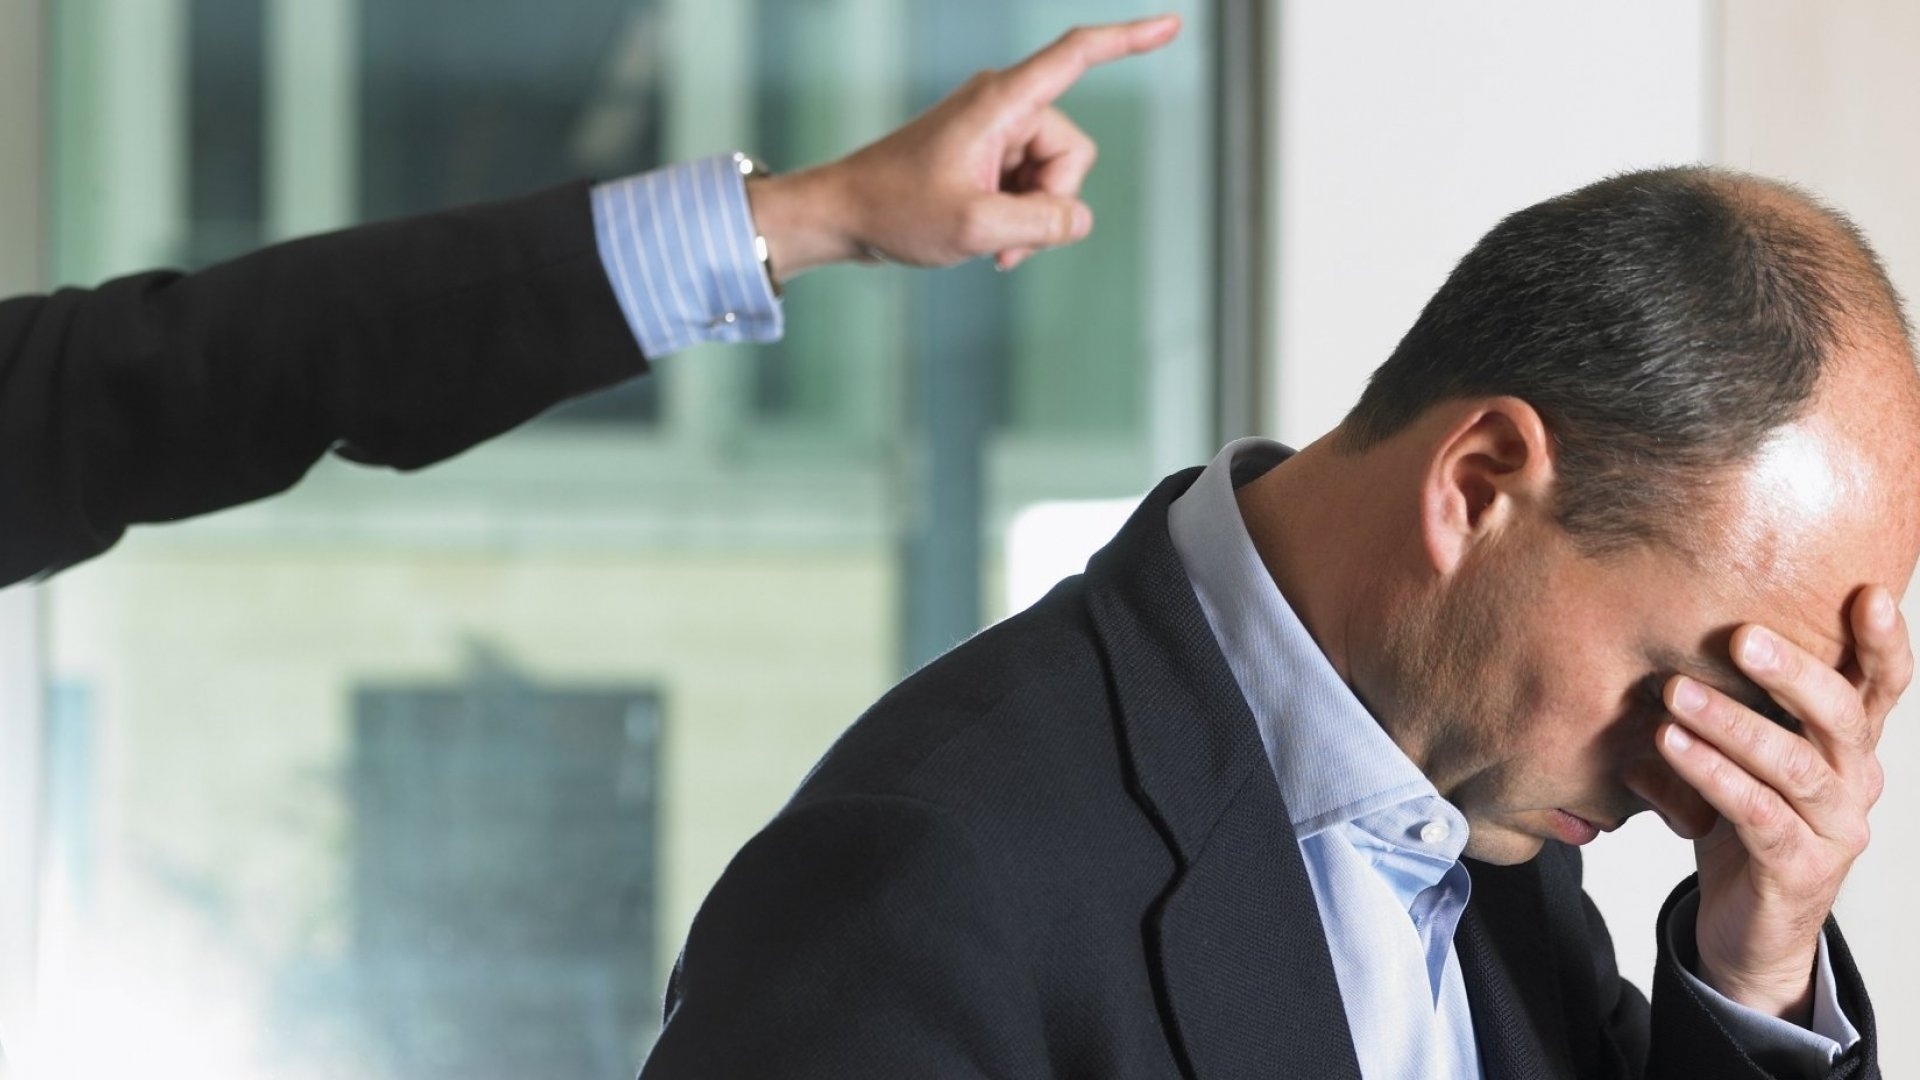 5 Easy Steps To Fire Employees So Well That They Want To Return